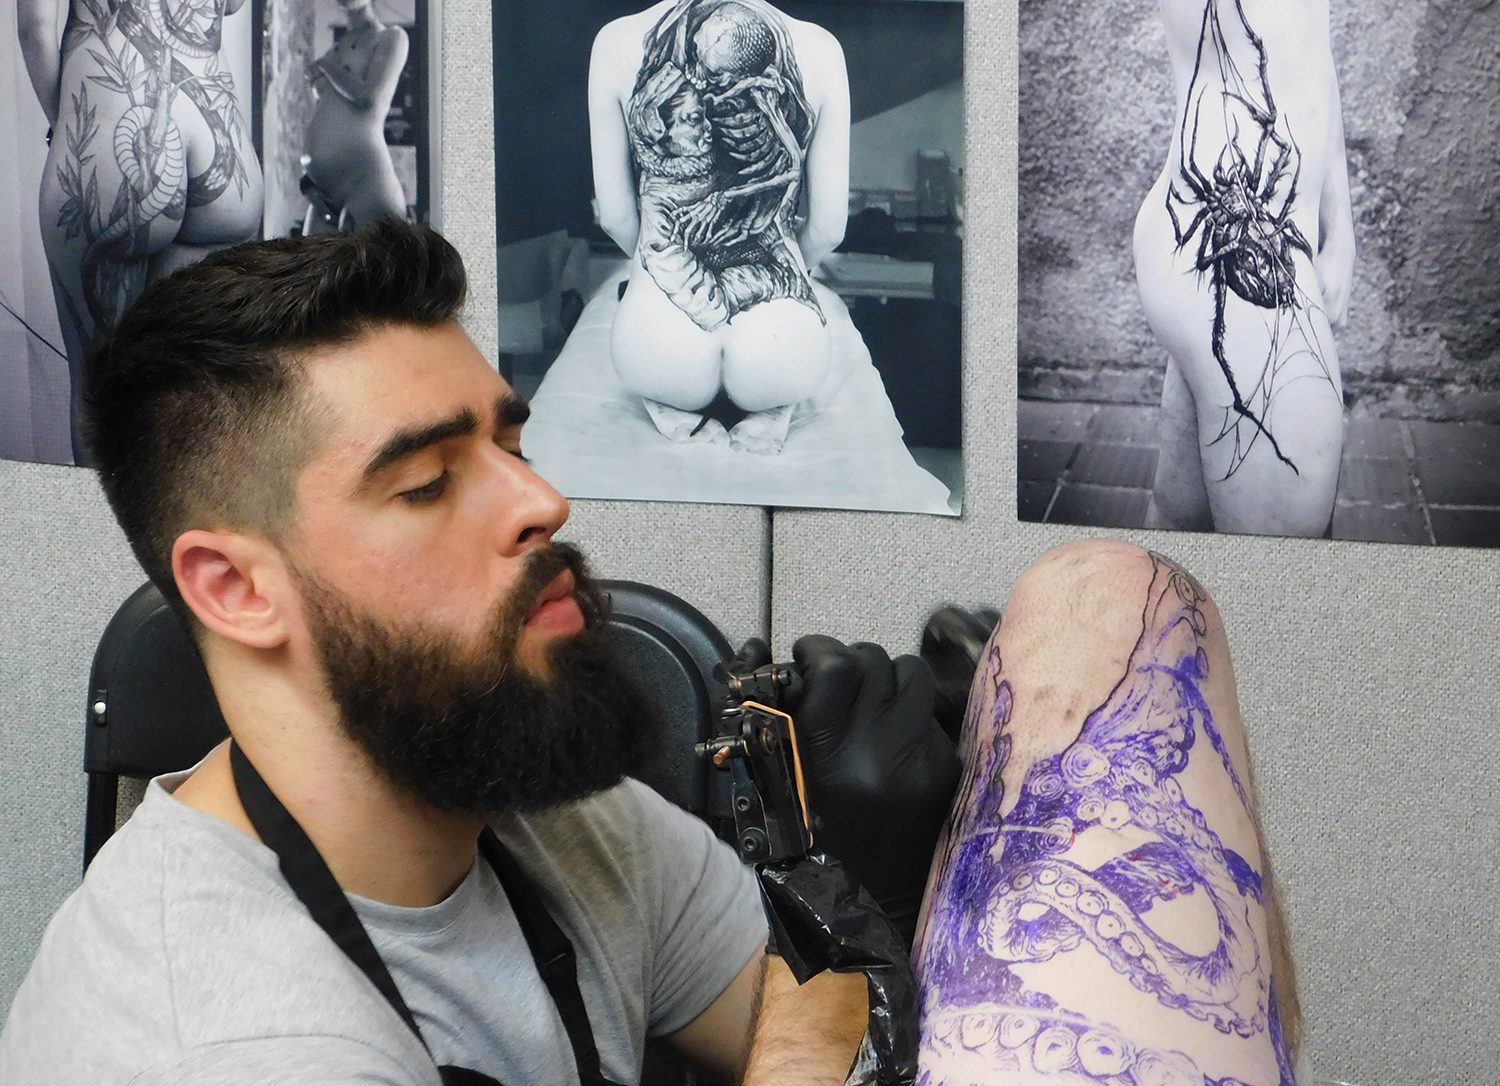 Frederico rabelo tattooing a leg, london tattoo convention